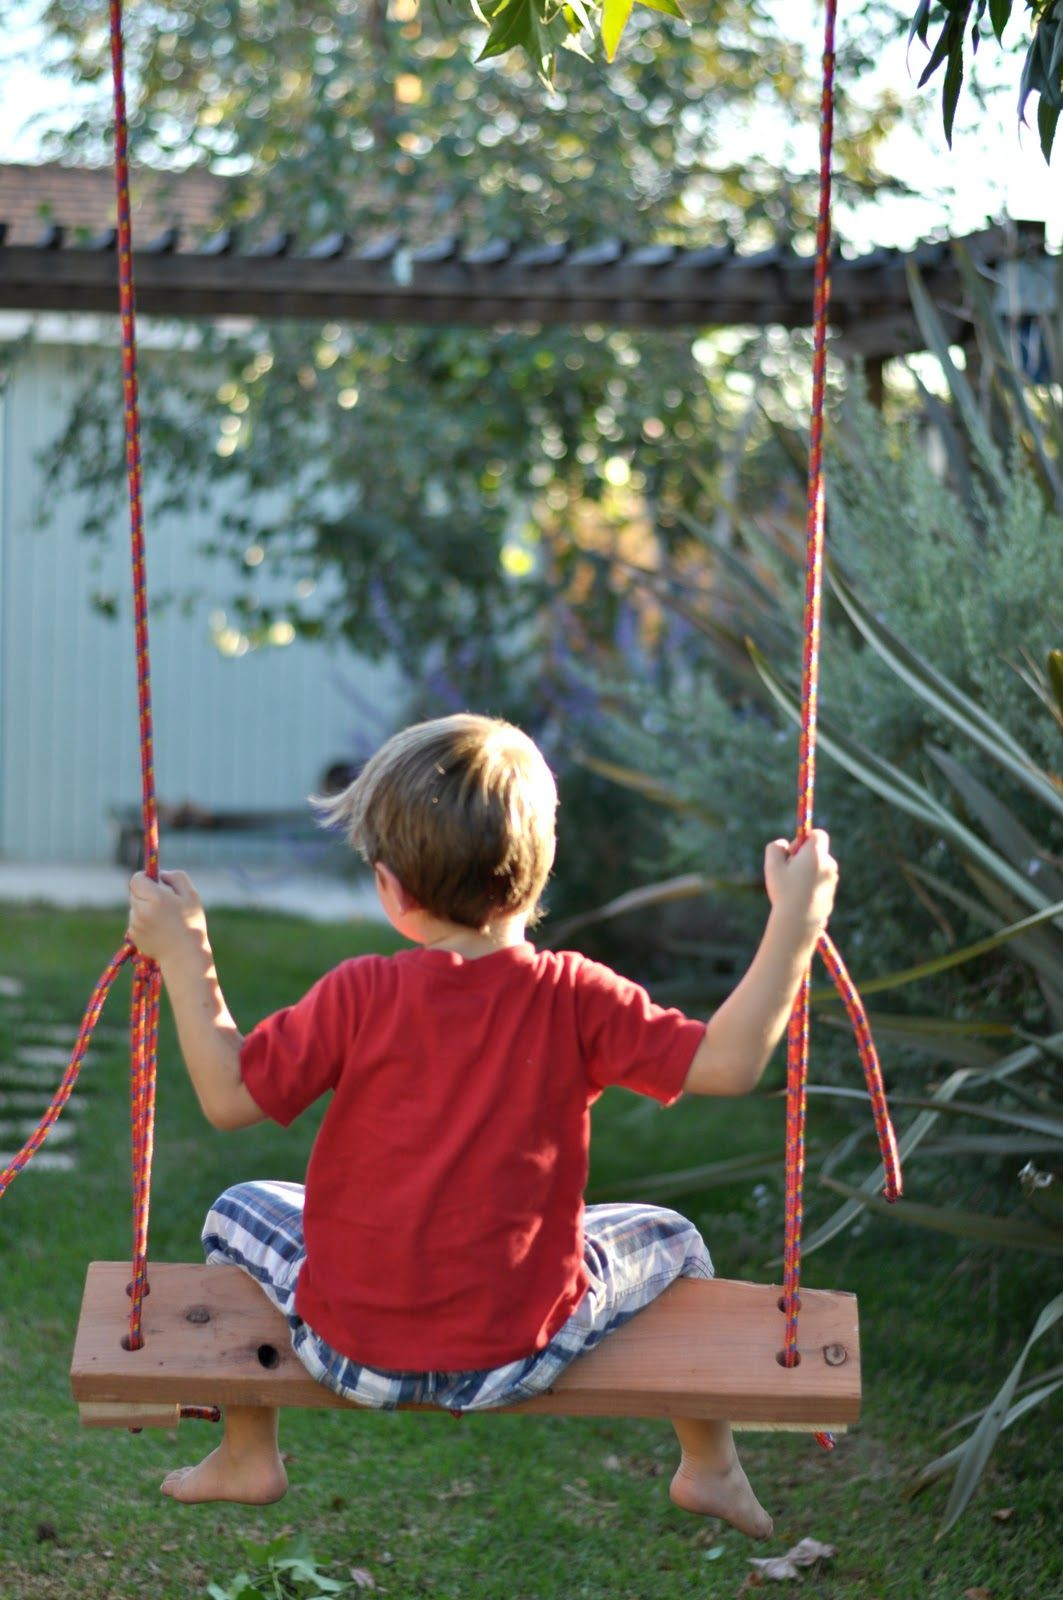 Diy make your own swing tutorialed to put in the backyard for